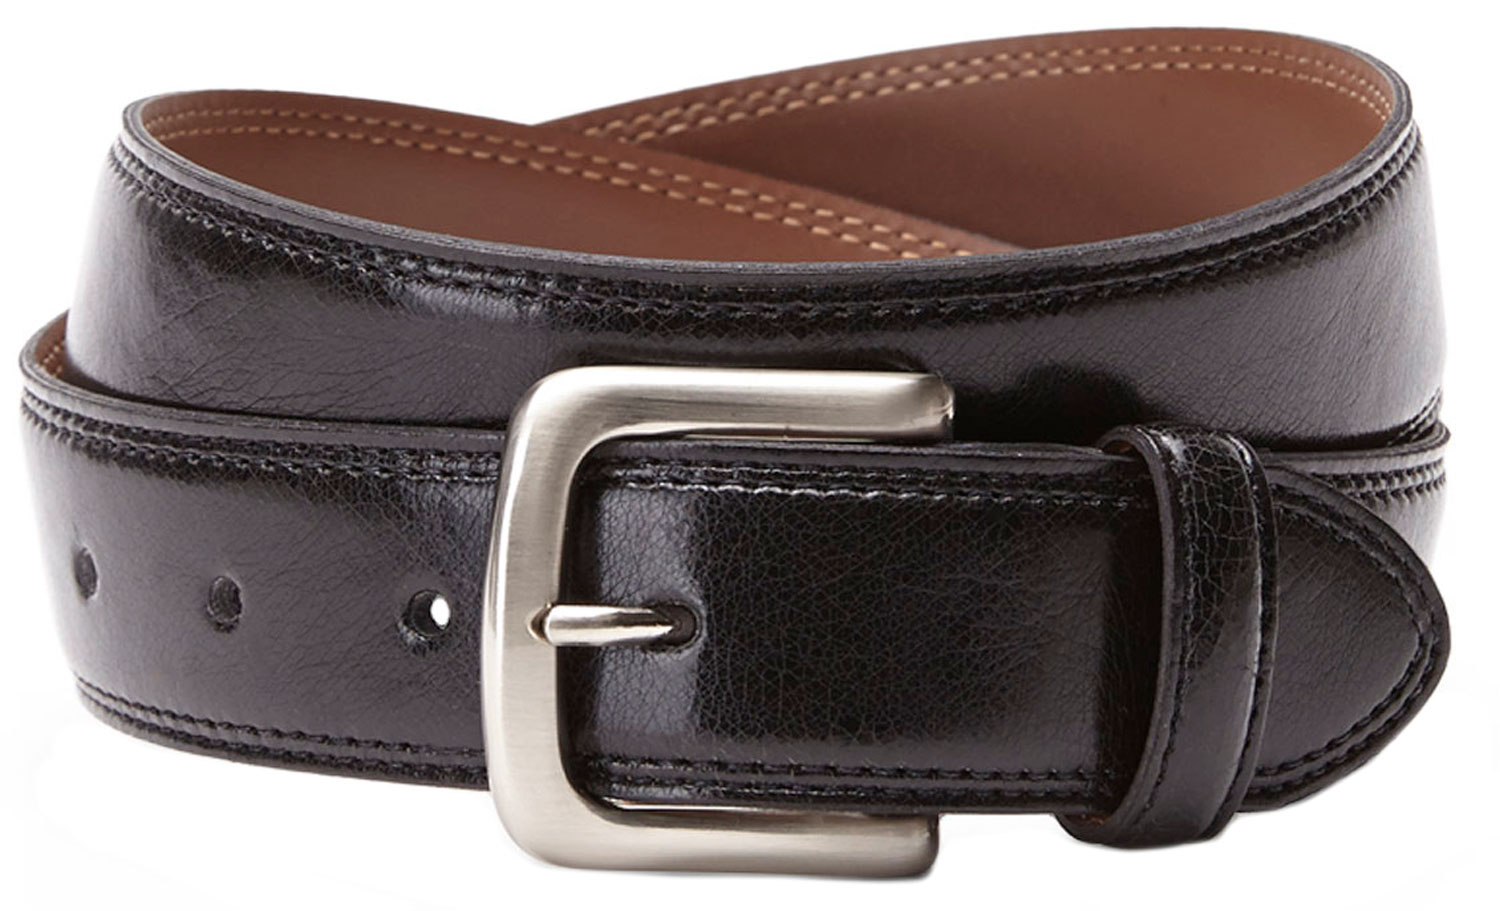 Bosca B03724 04 Men's Black Genuine Leather Belt M